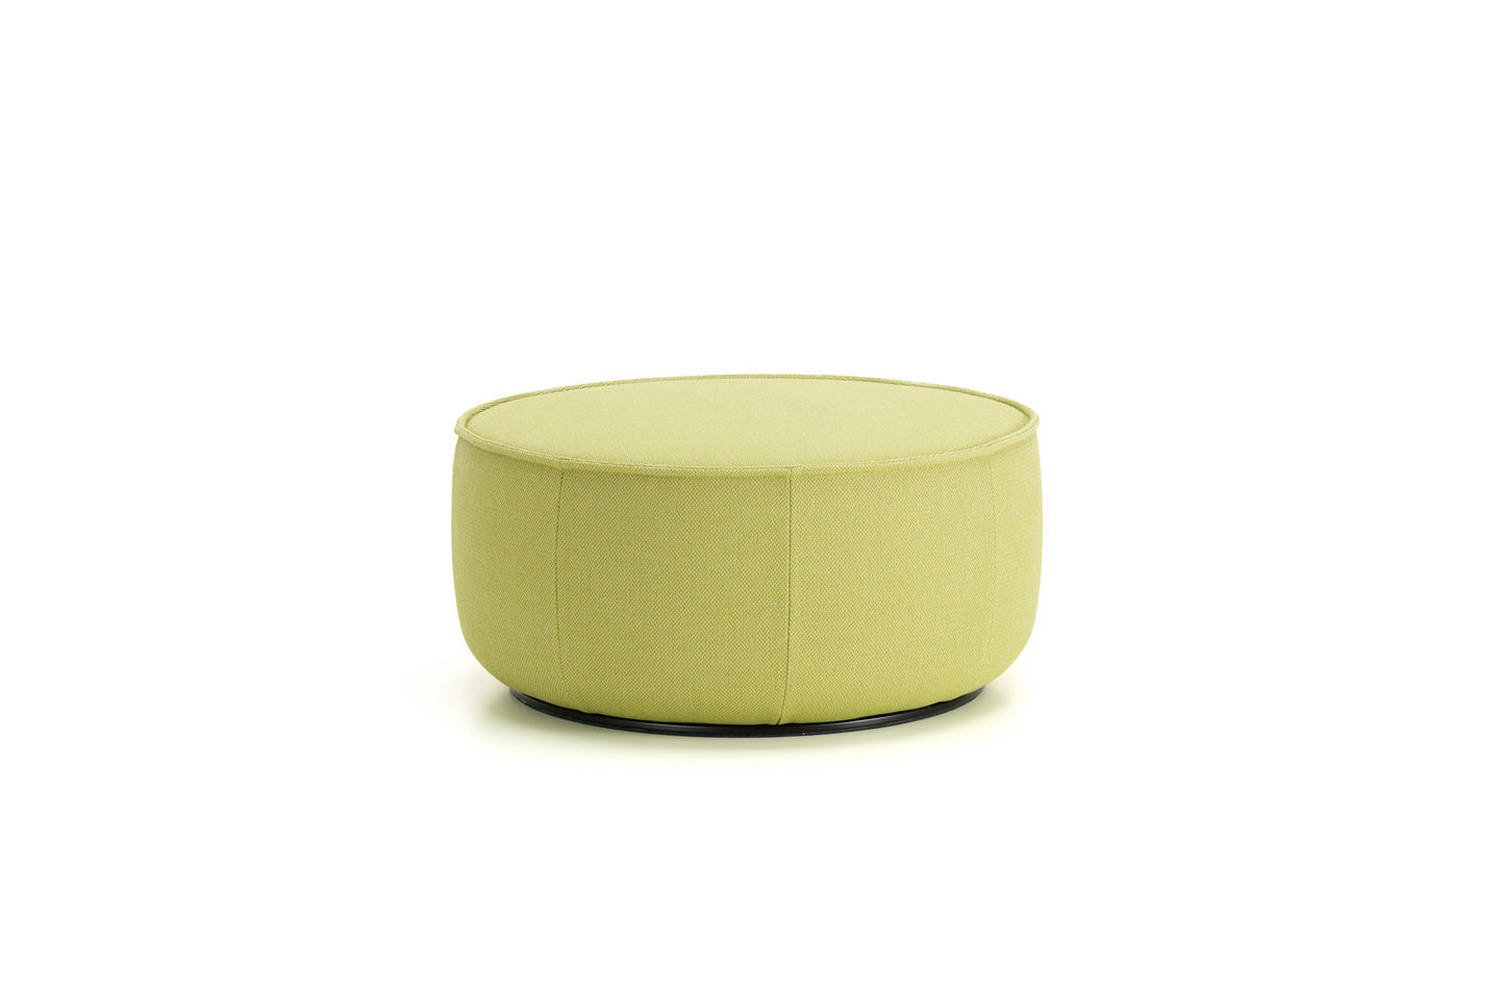 Mariposa Ottoman by Edward Barber & Jay Osgerby for Vitra